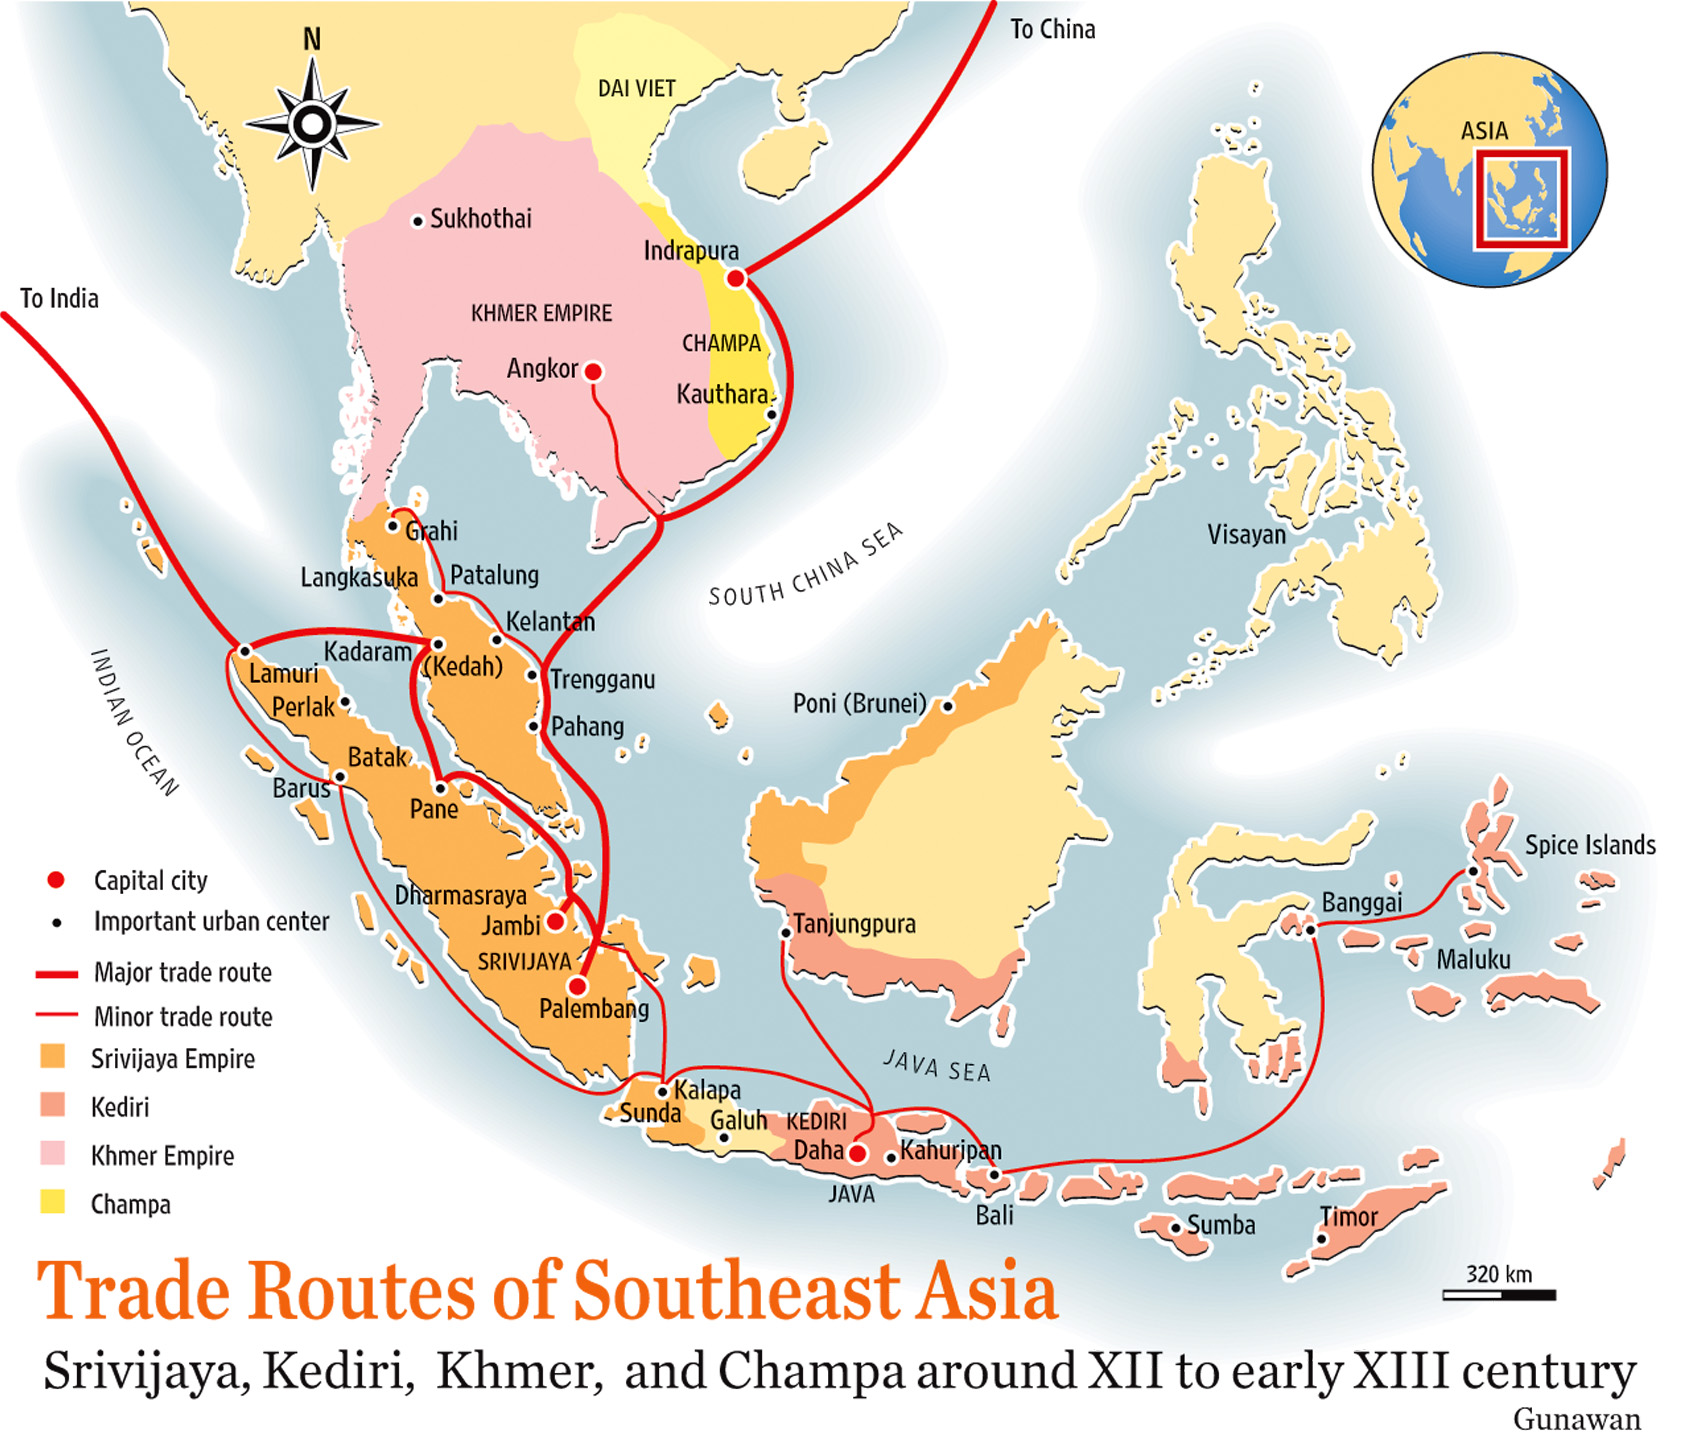 File:Southeast Asia trade route map XIIcentury.jpg ... on afghanistan map, ogallala aquifer map, marco polo route map, indian ocean sea routes, ancient trade routes map, indian ocean maritime routes, eurasian trade routes map, indian ocean commerce, indian ocean commercial network, indian ocean trading network, silk road map, alexander the great route map, indian ocean sea lanes, world trade routes map, india trade map, silk route map, persian empire map, crusades route map, aryans route map, vikings route map,